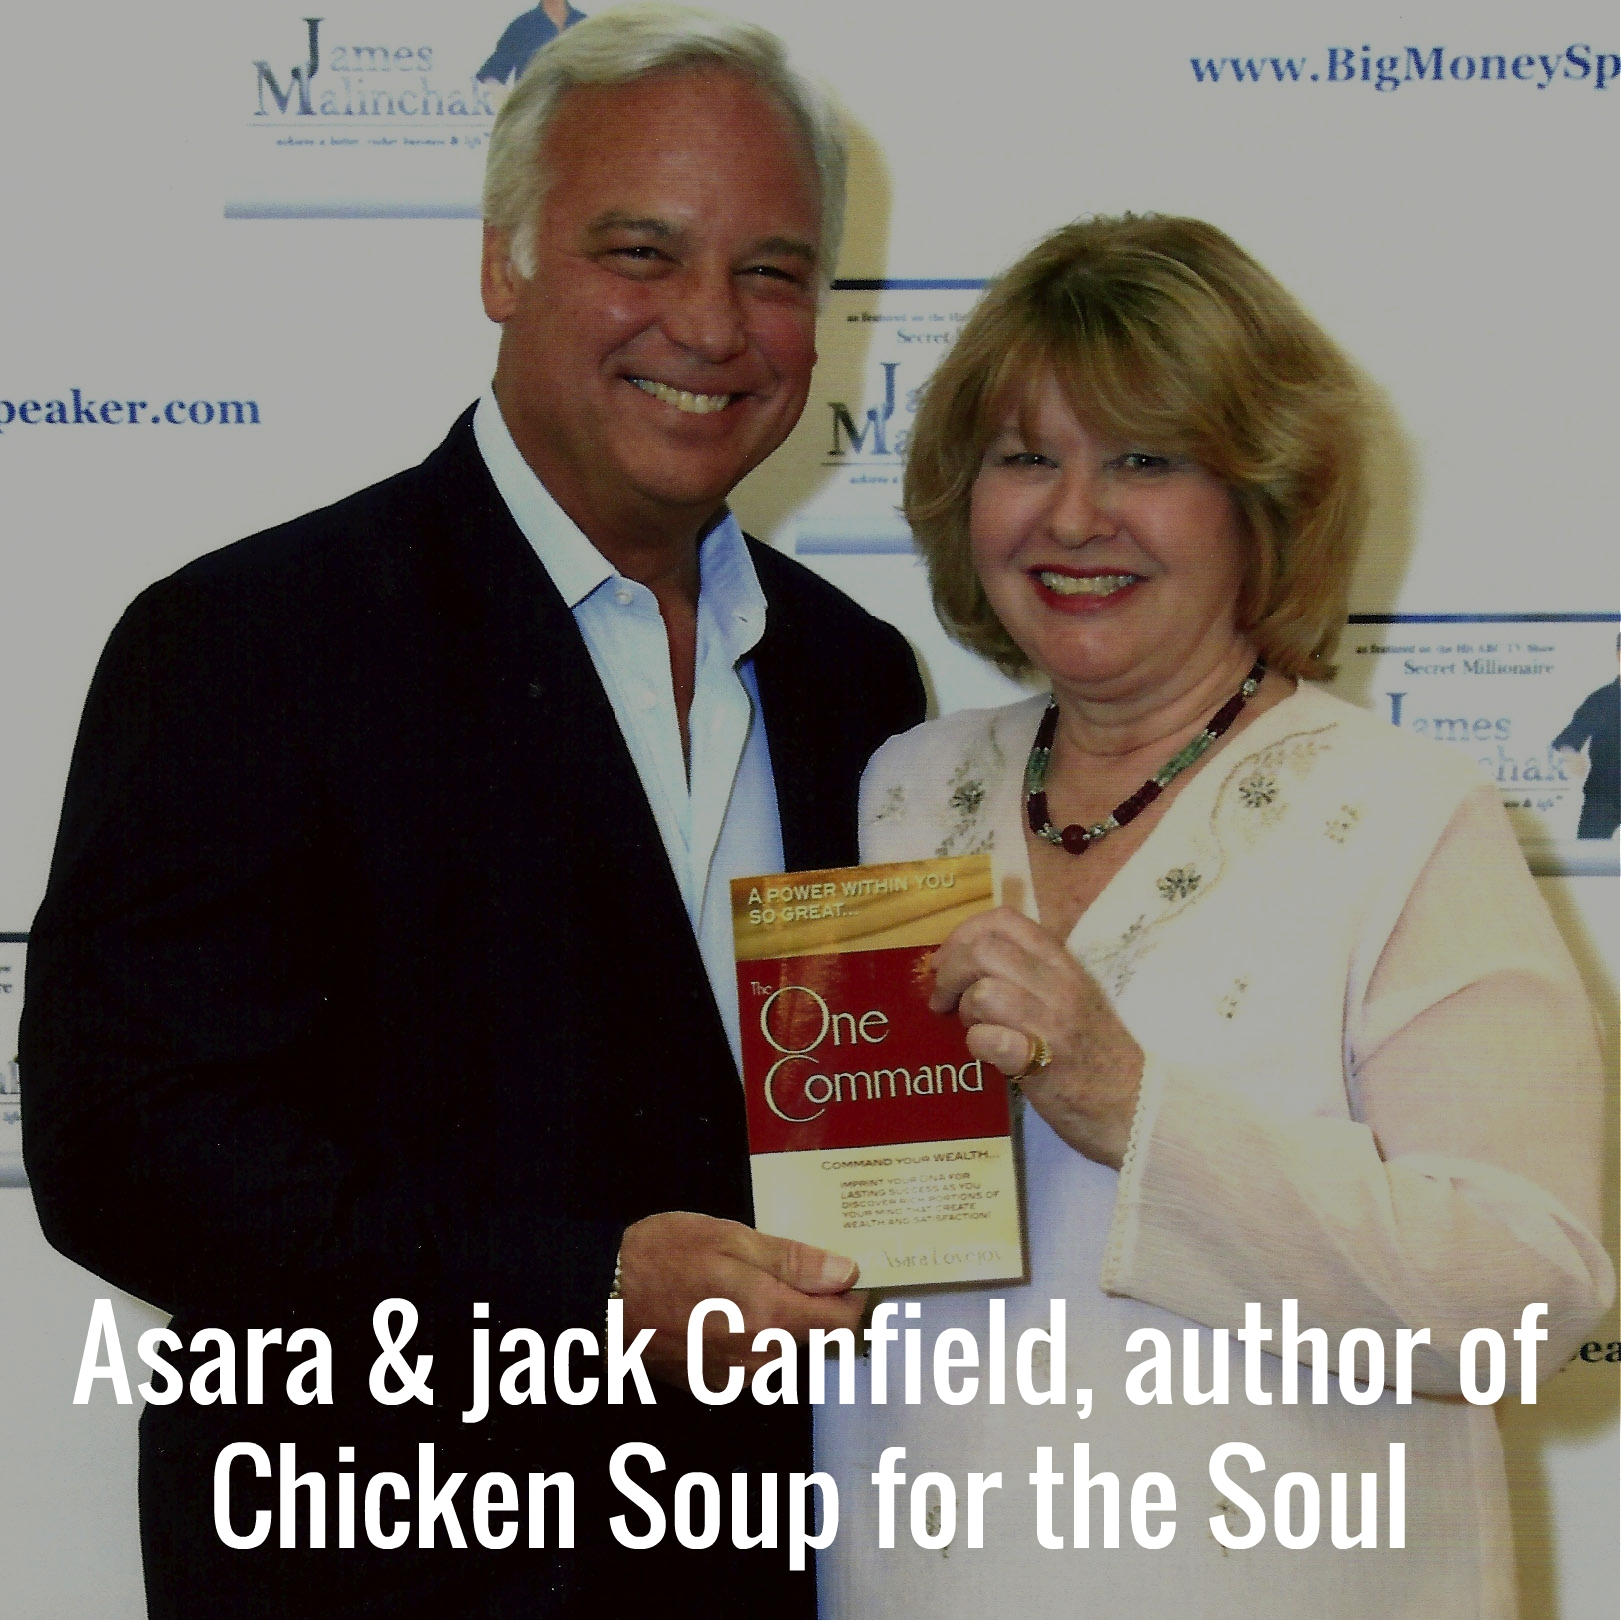 Asara and Jack Canfield, author of Chicken Soup for the Soul